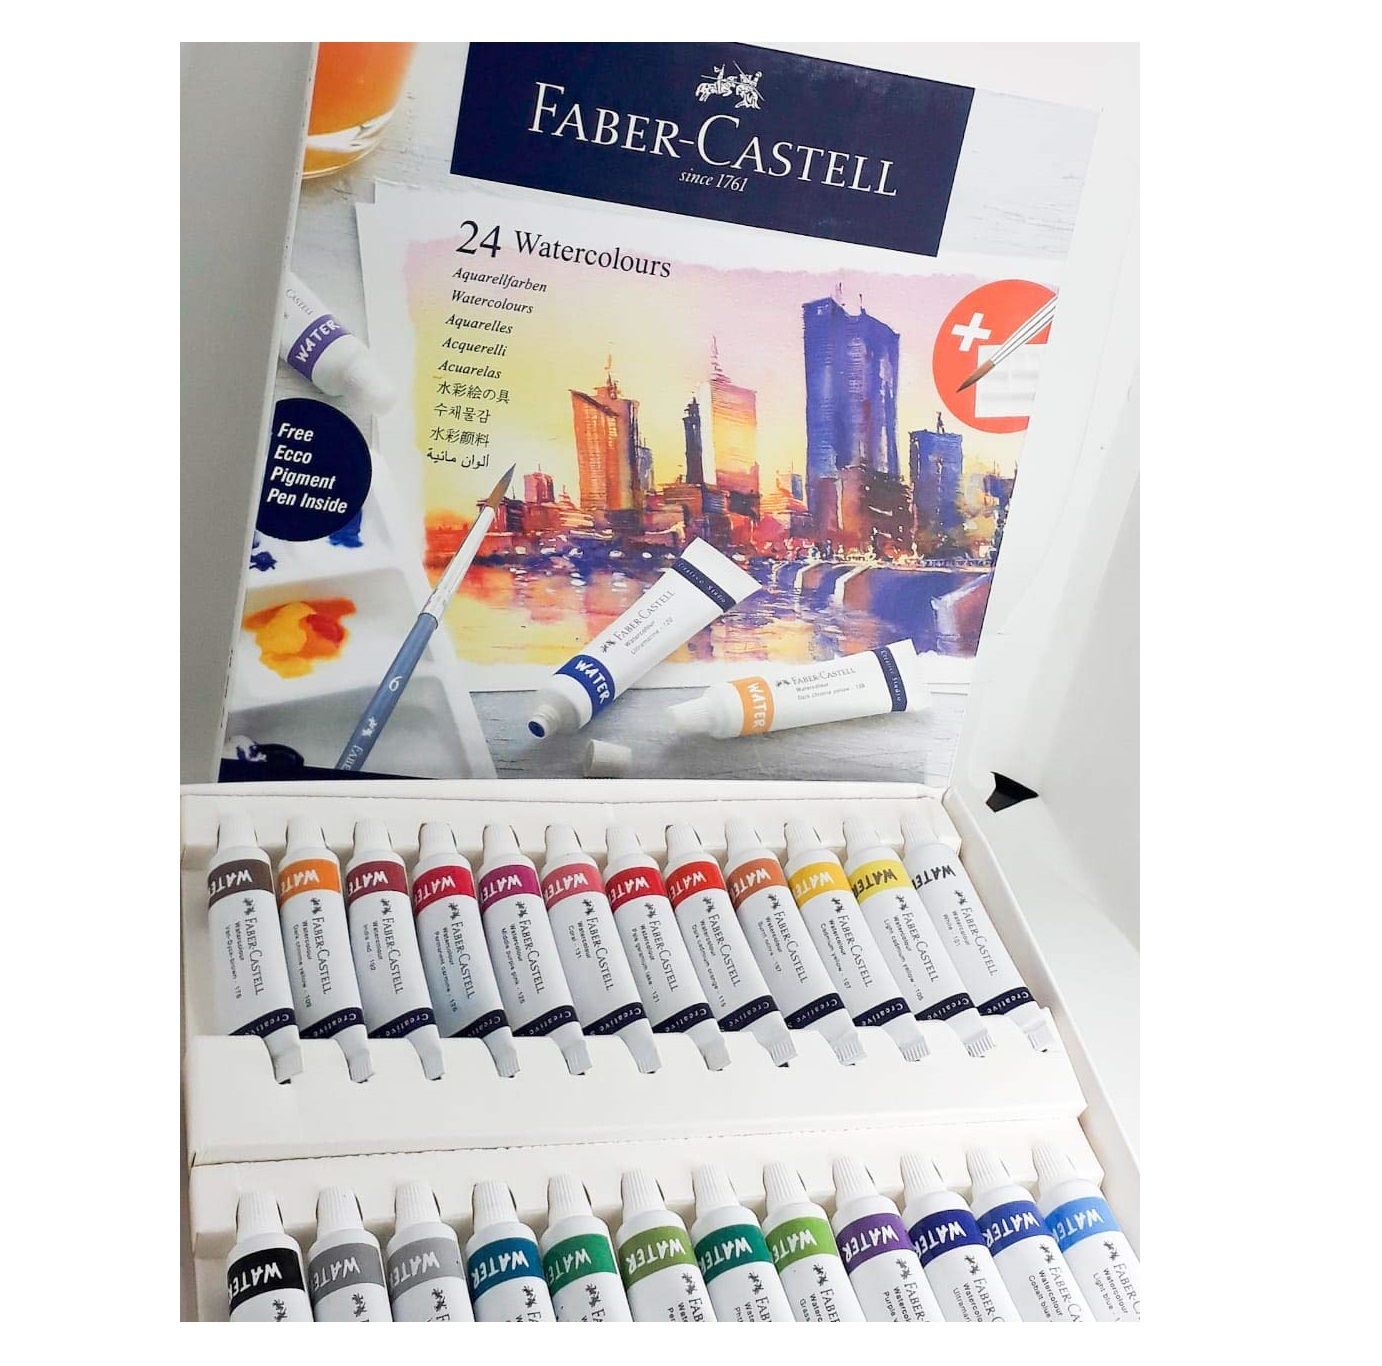 Faber-Castell Creative Studio Watercolours 9 ml Set of 24